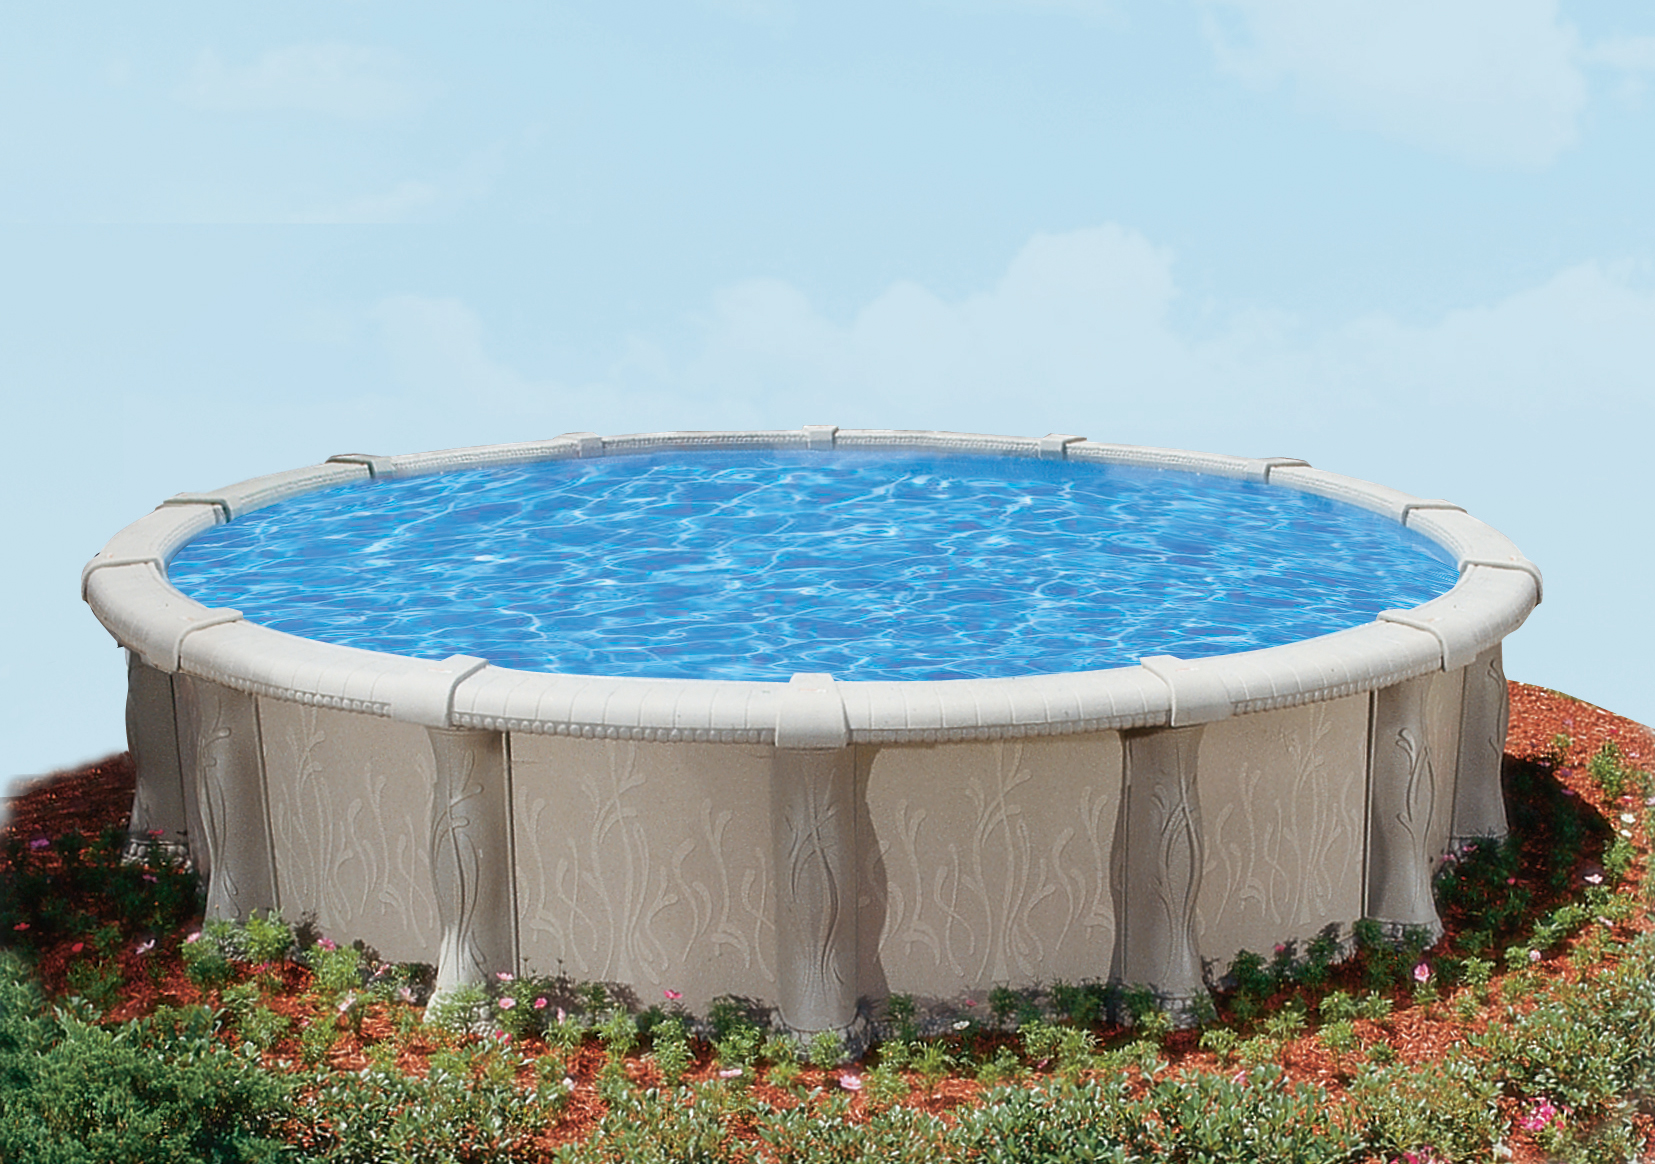 24 39 Round 52 Embassy Saltwater Valencia By H I I Mfg Of Doughboy Royal Swimming Pools